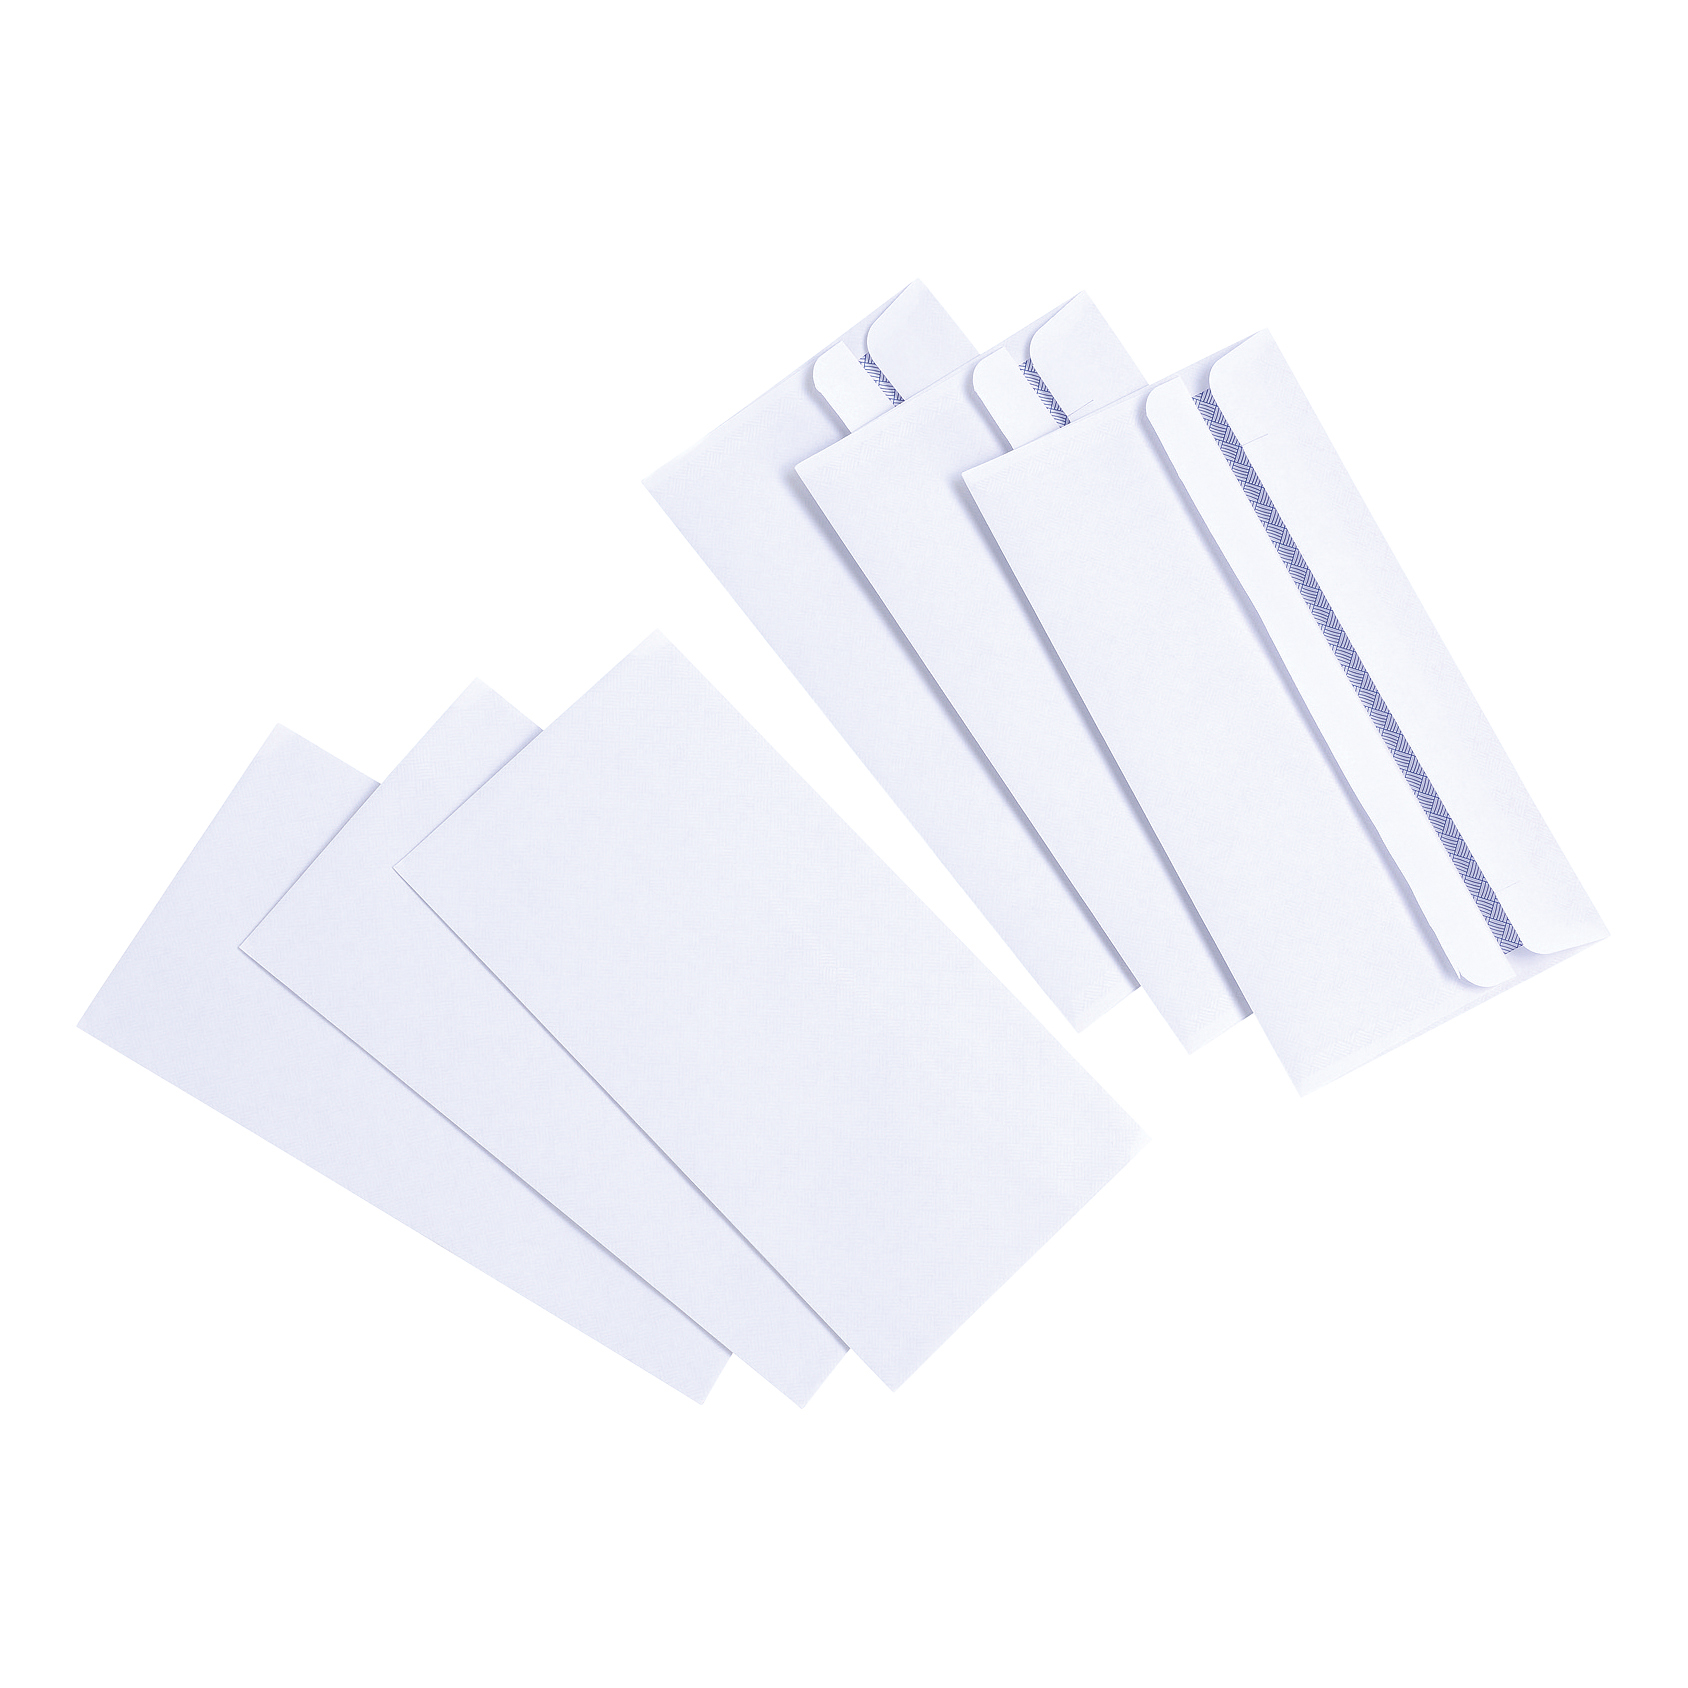 DL 5 Star Value Envelope DL Wallet Self Seal 80gsm White Pack 1000